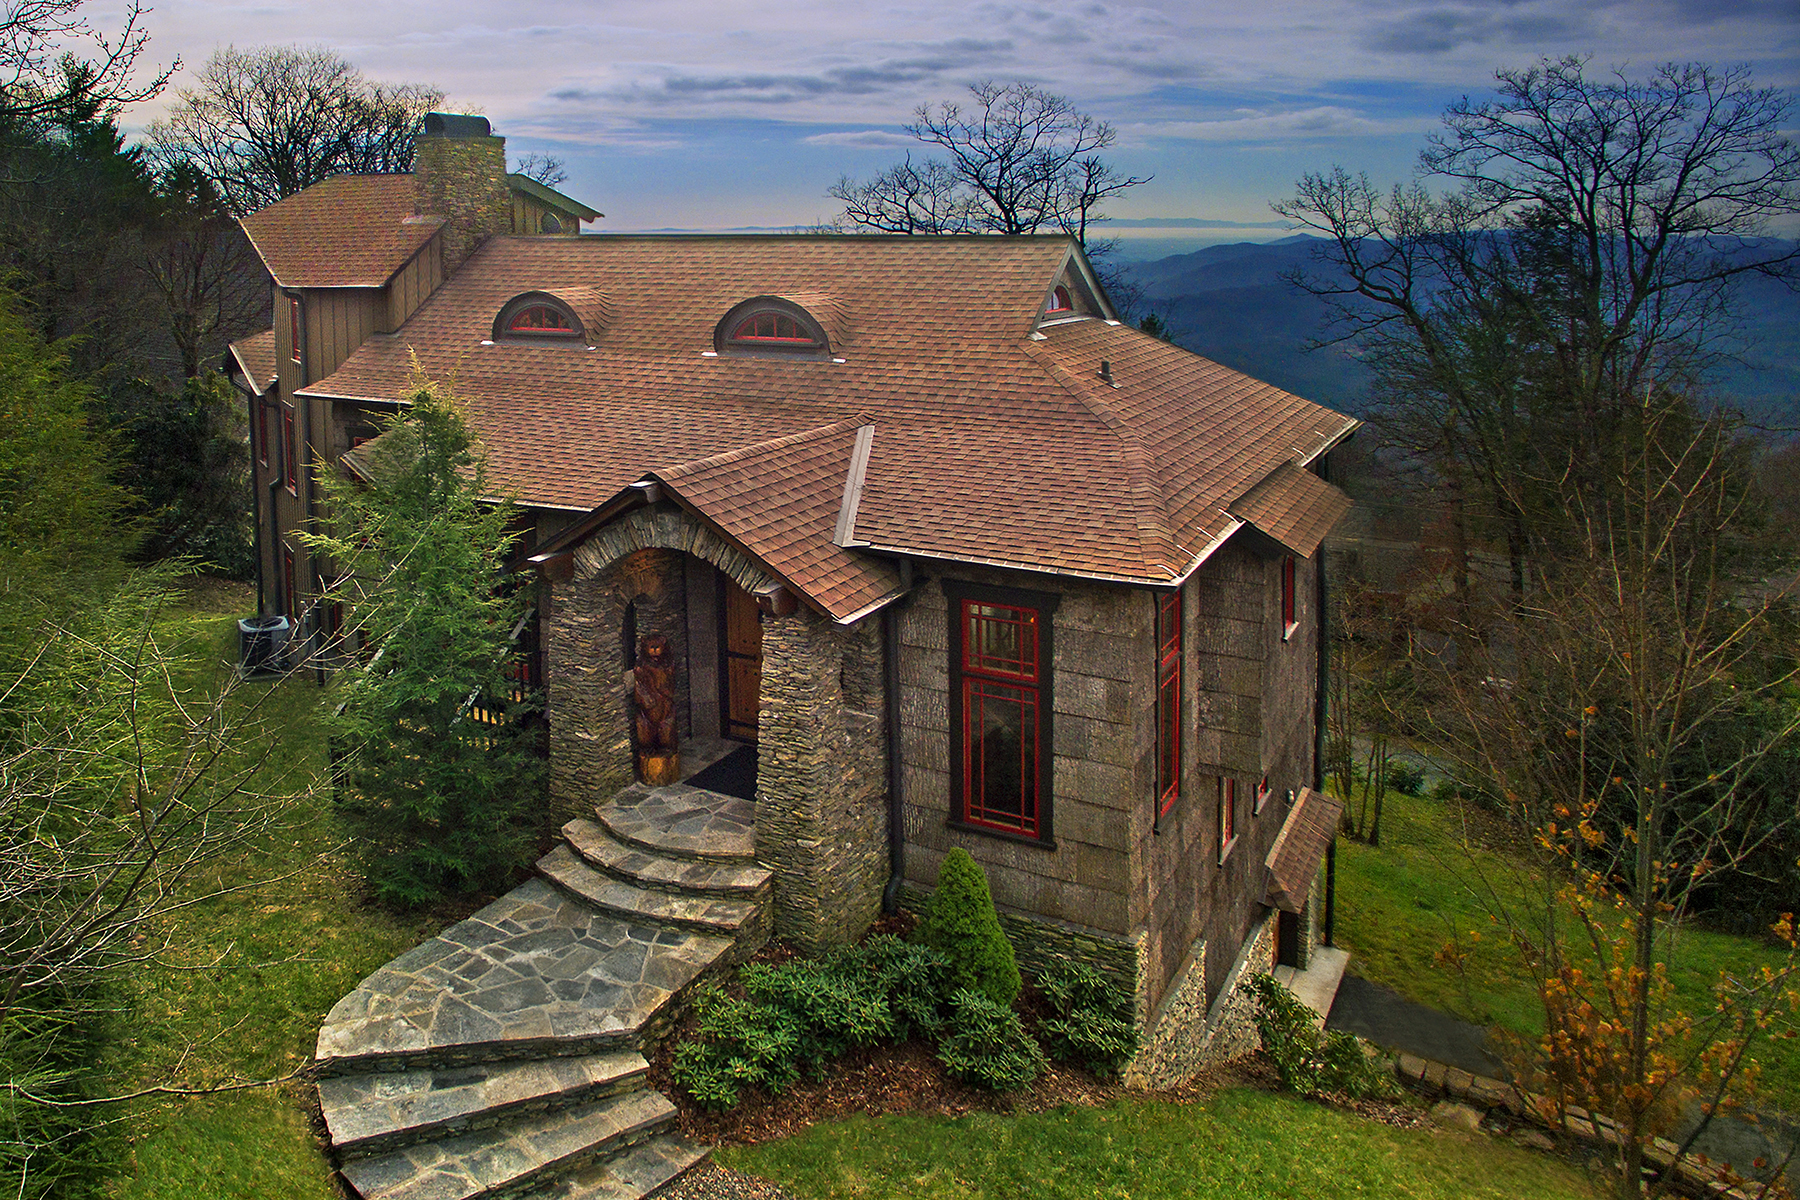 Single Family Home for Sale at BLOWING ROCK - LAUREL PARK 157 Dogwood Lane Blowing Rock, North Carolina, 28605 United States